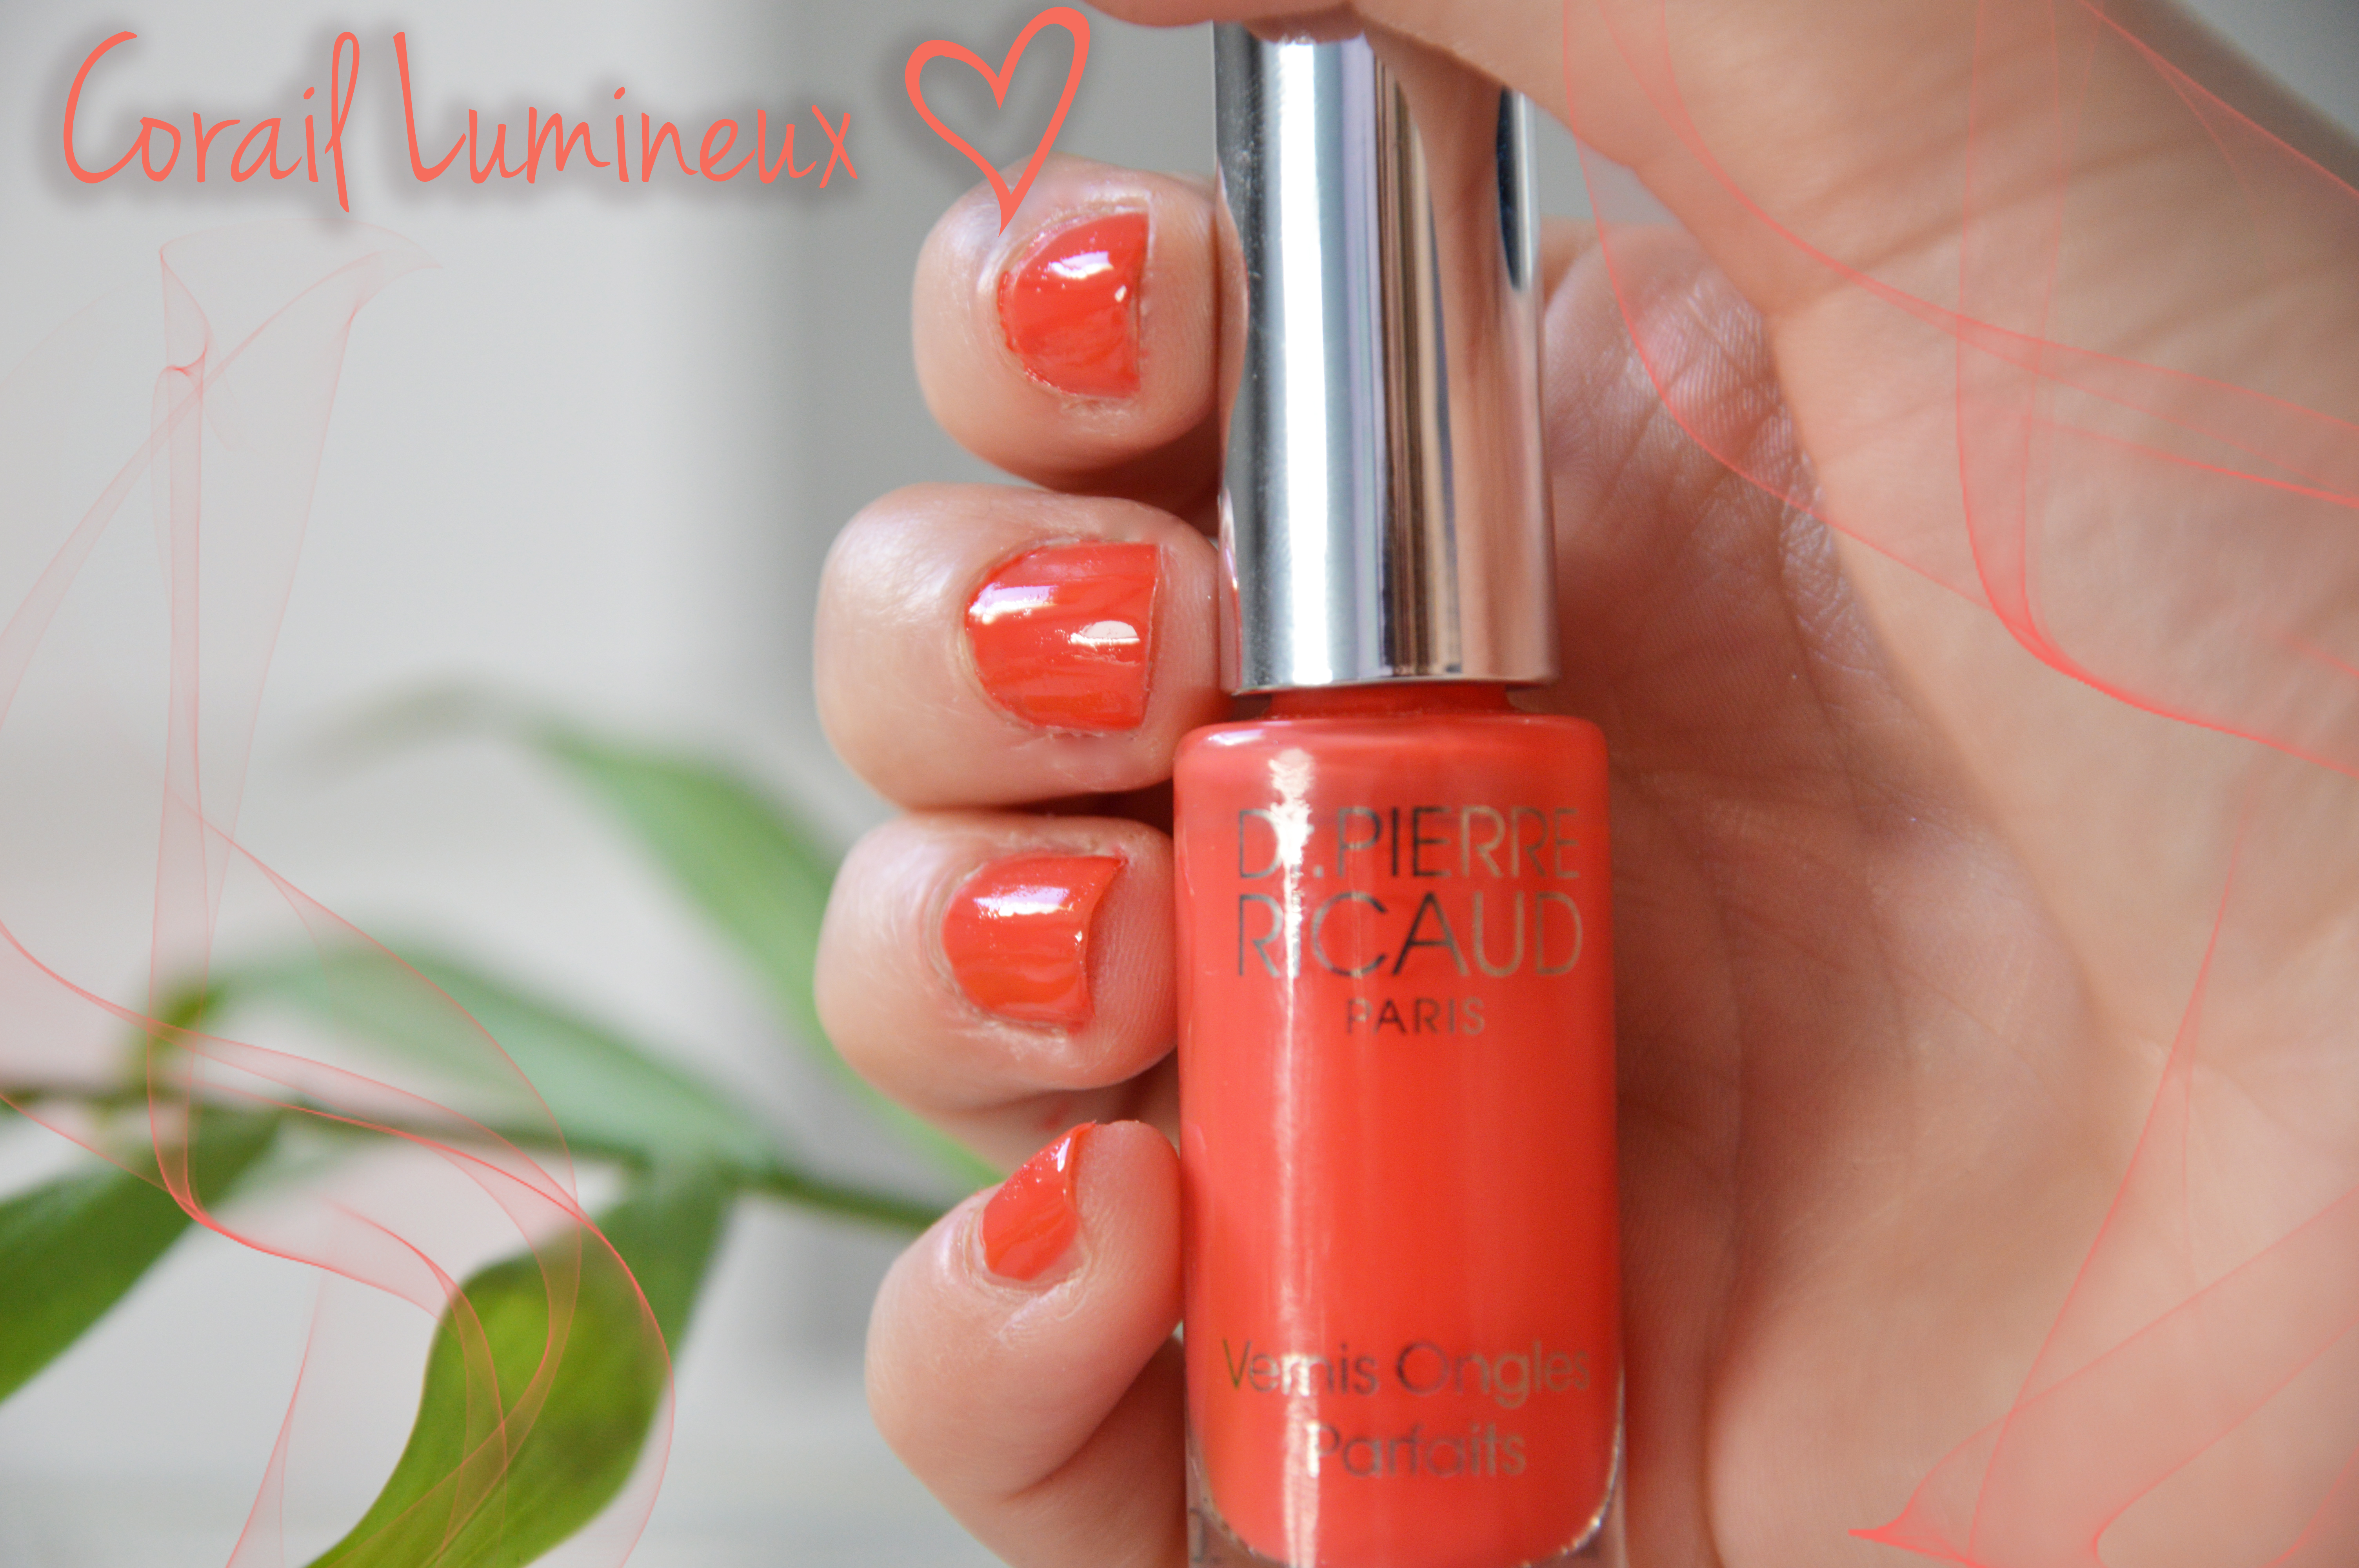 ALITTLEB_BLOG_BEAUTE_COLLECTION_UN_AIR_D_ETE_DR_PIERRE_RICAUD_CORAIL_LUMINEUX_VERNIS